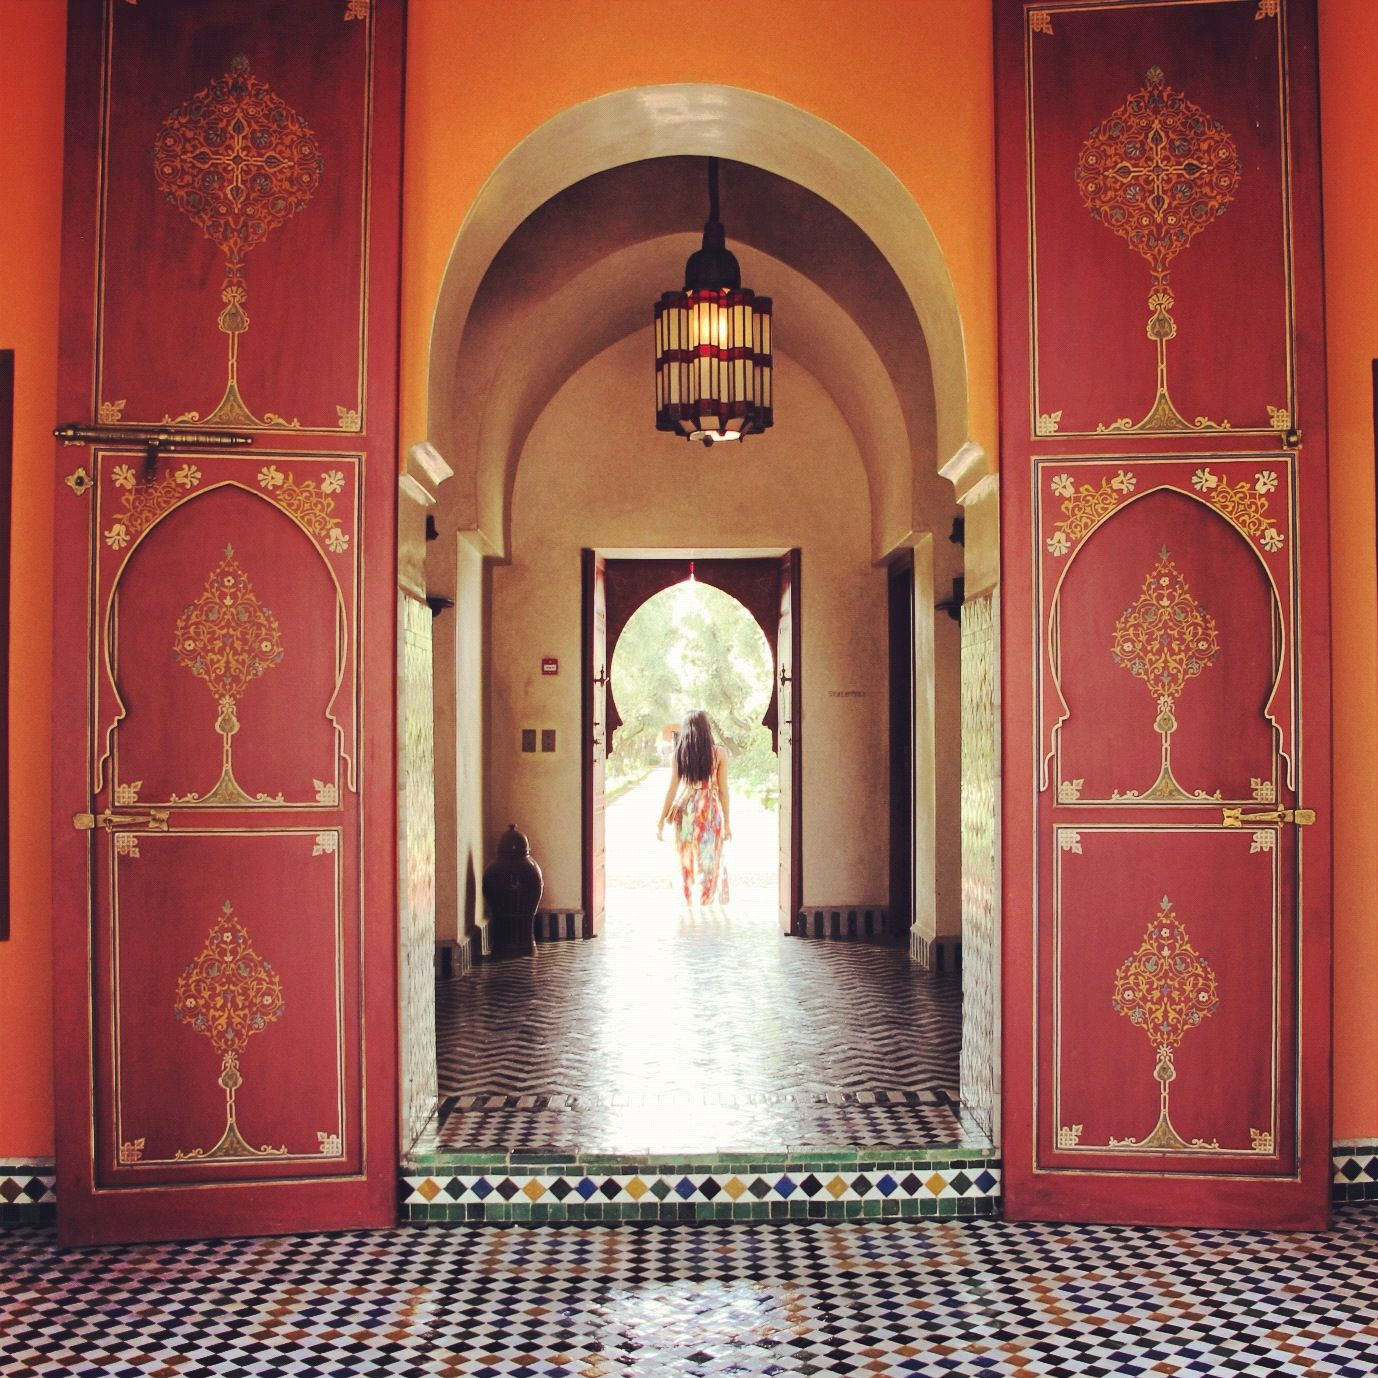 Knock Knock Salle De Bain ~ la mamounia marrakech morocco fortnighter s favorite honeymoon